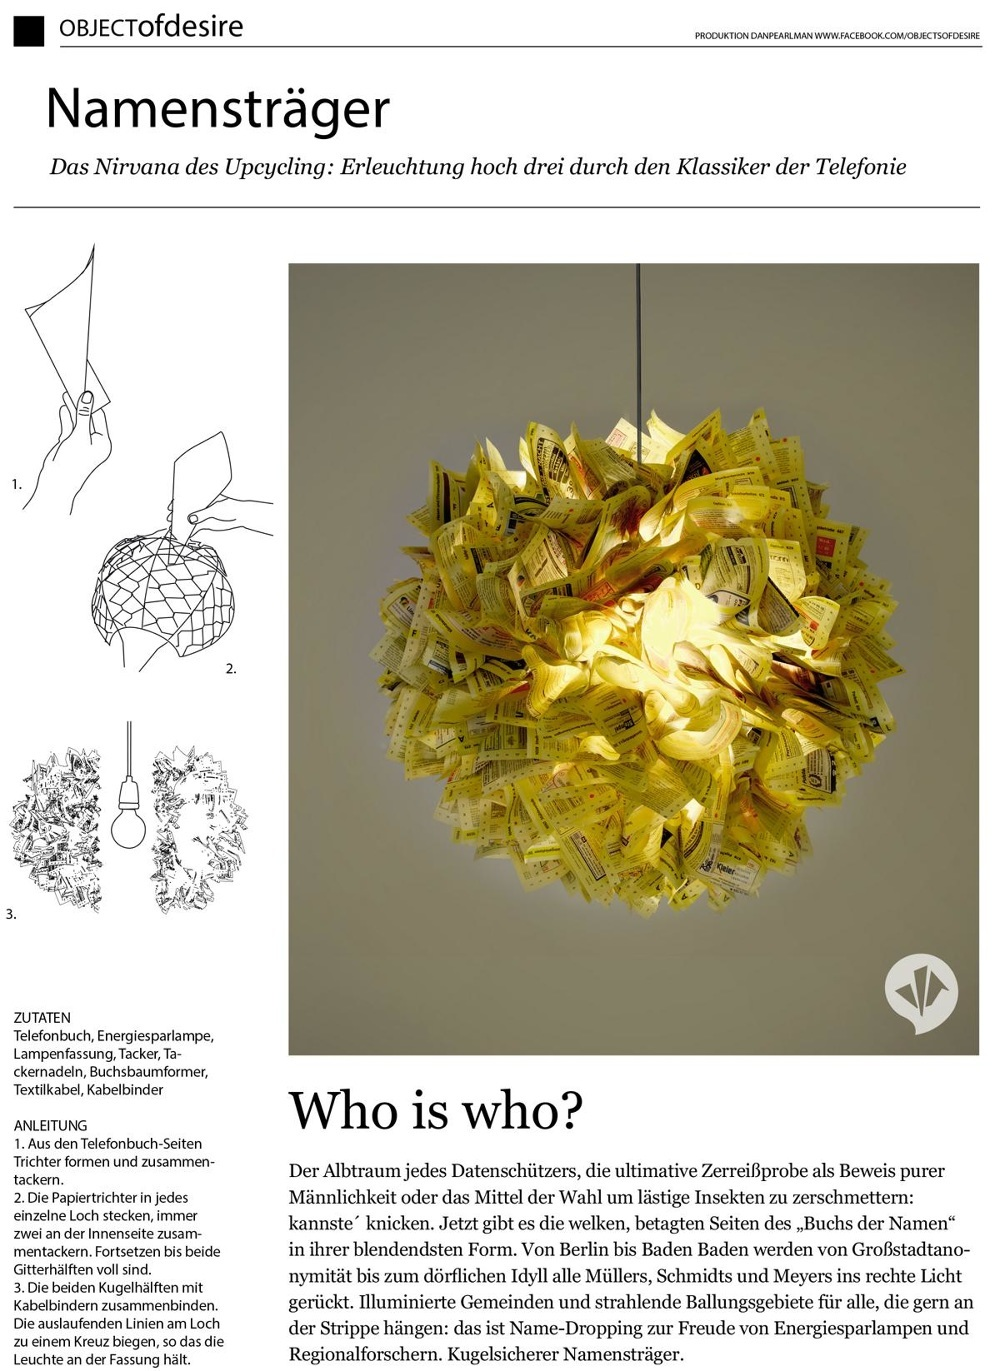 objects of desire - monthly column for h.o.m.e. magazine - jonas